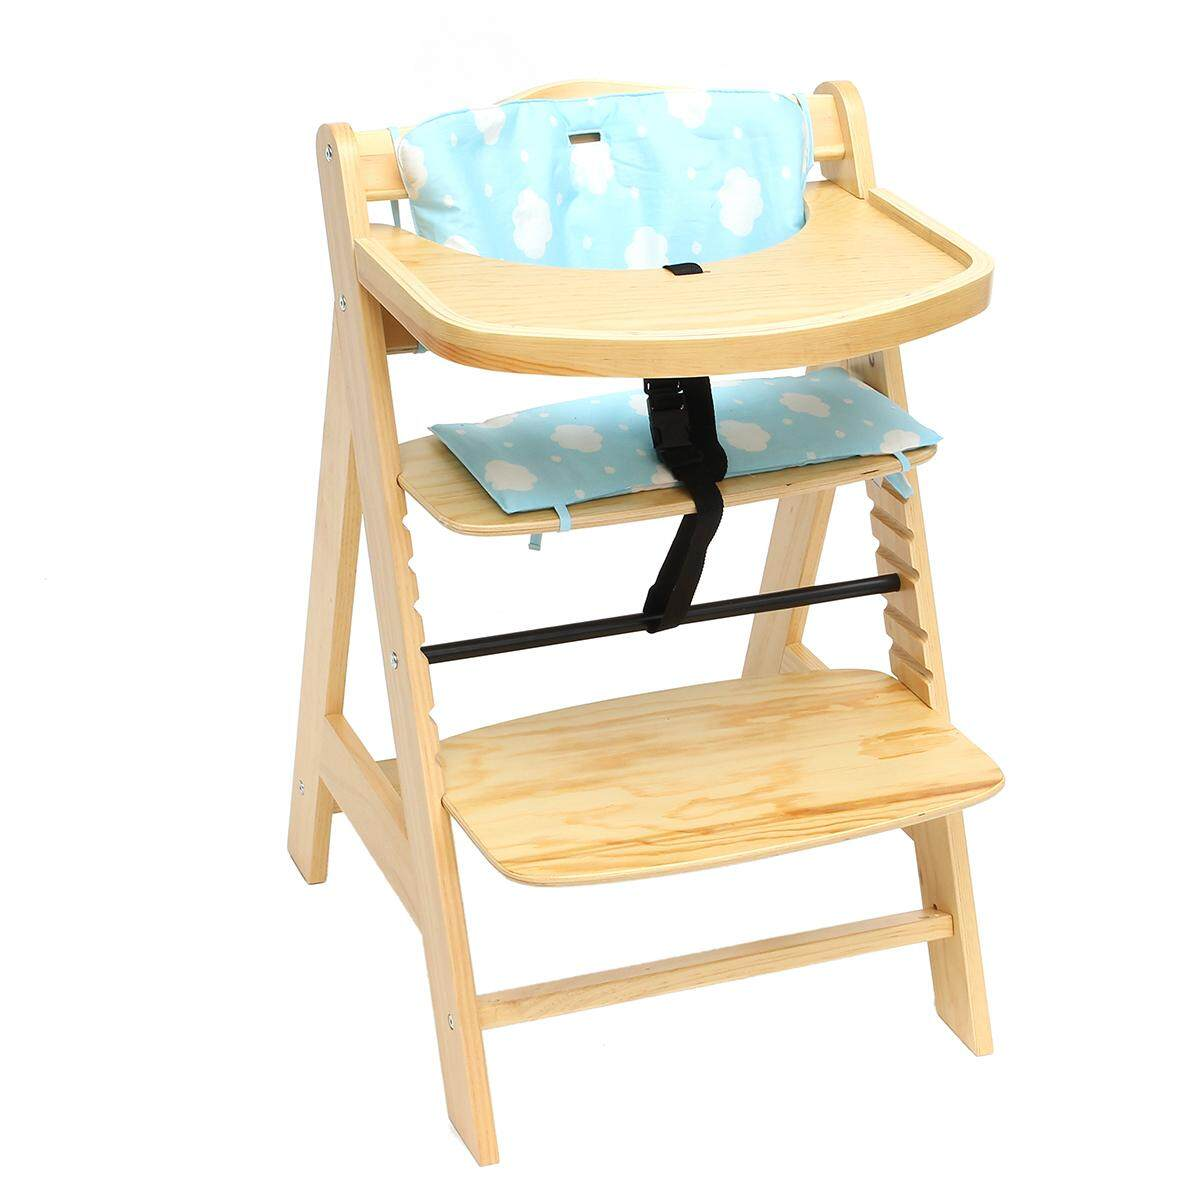 Baby High Chair 3 in 1 Wooden Highchair with Tray and Bar (BEECH) Blue - intl